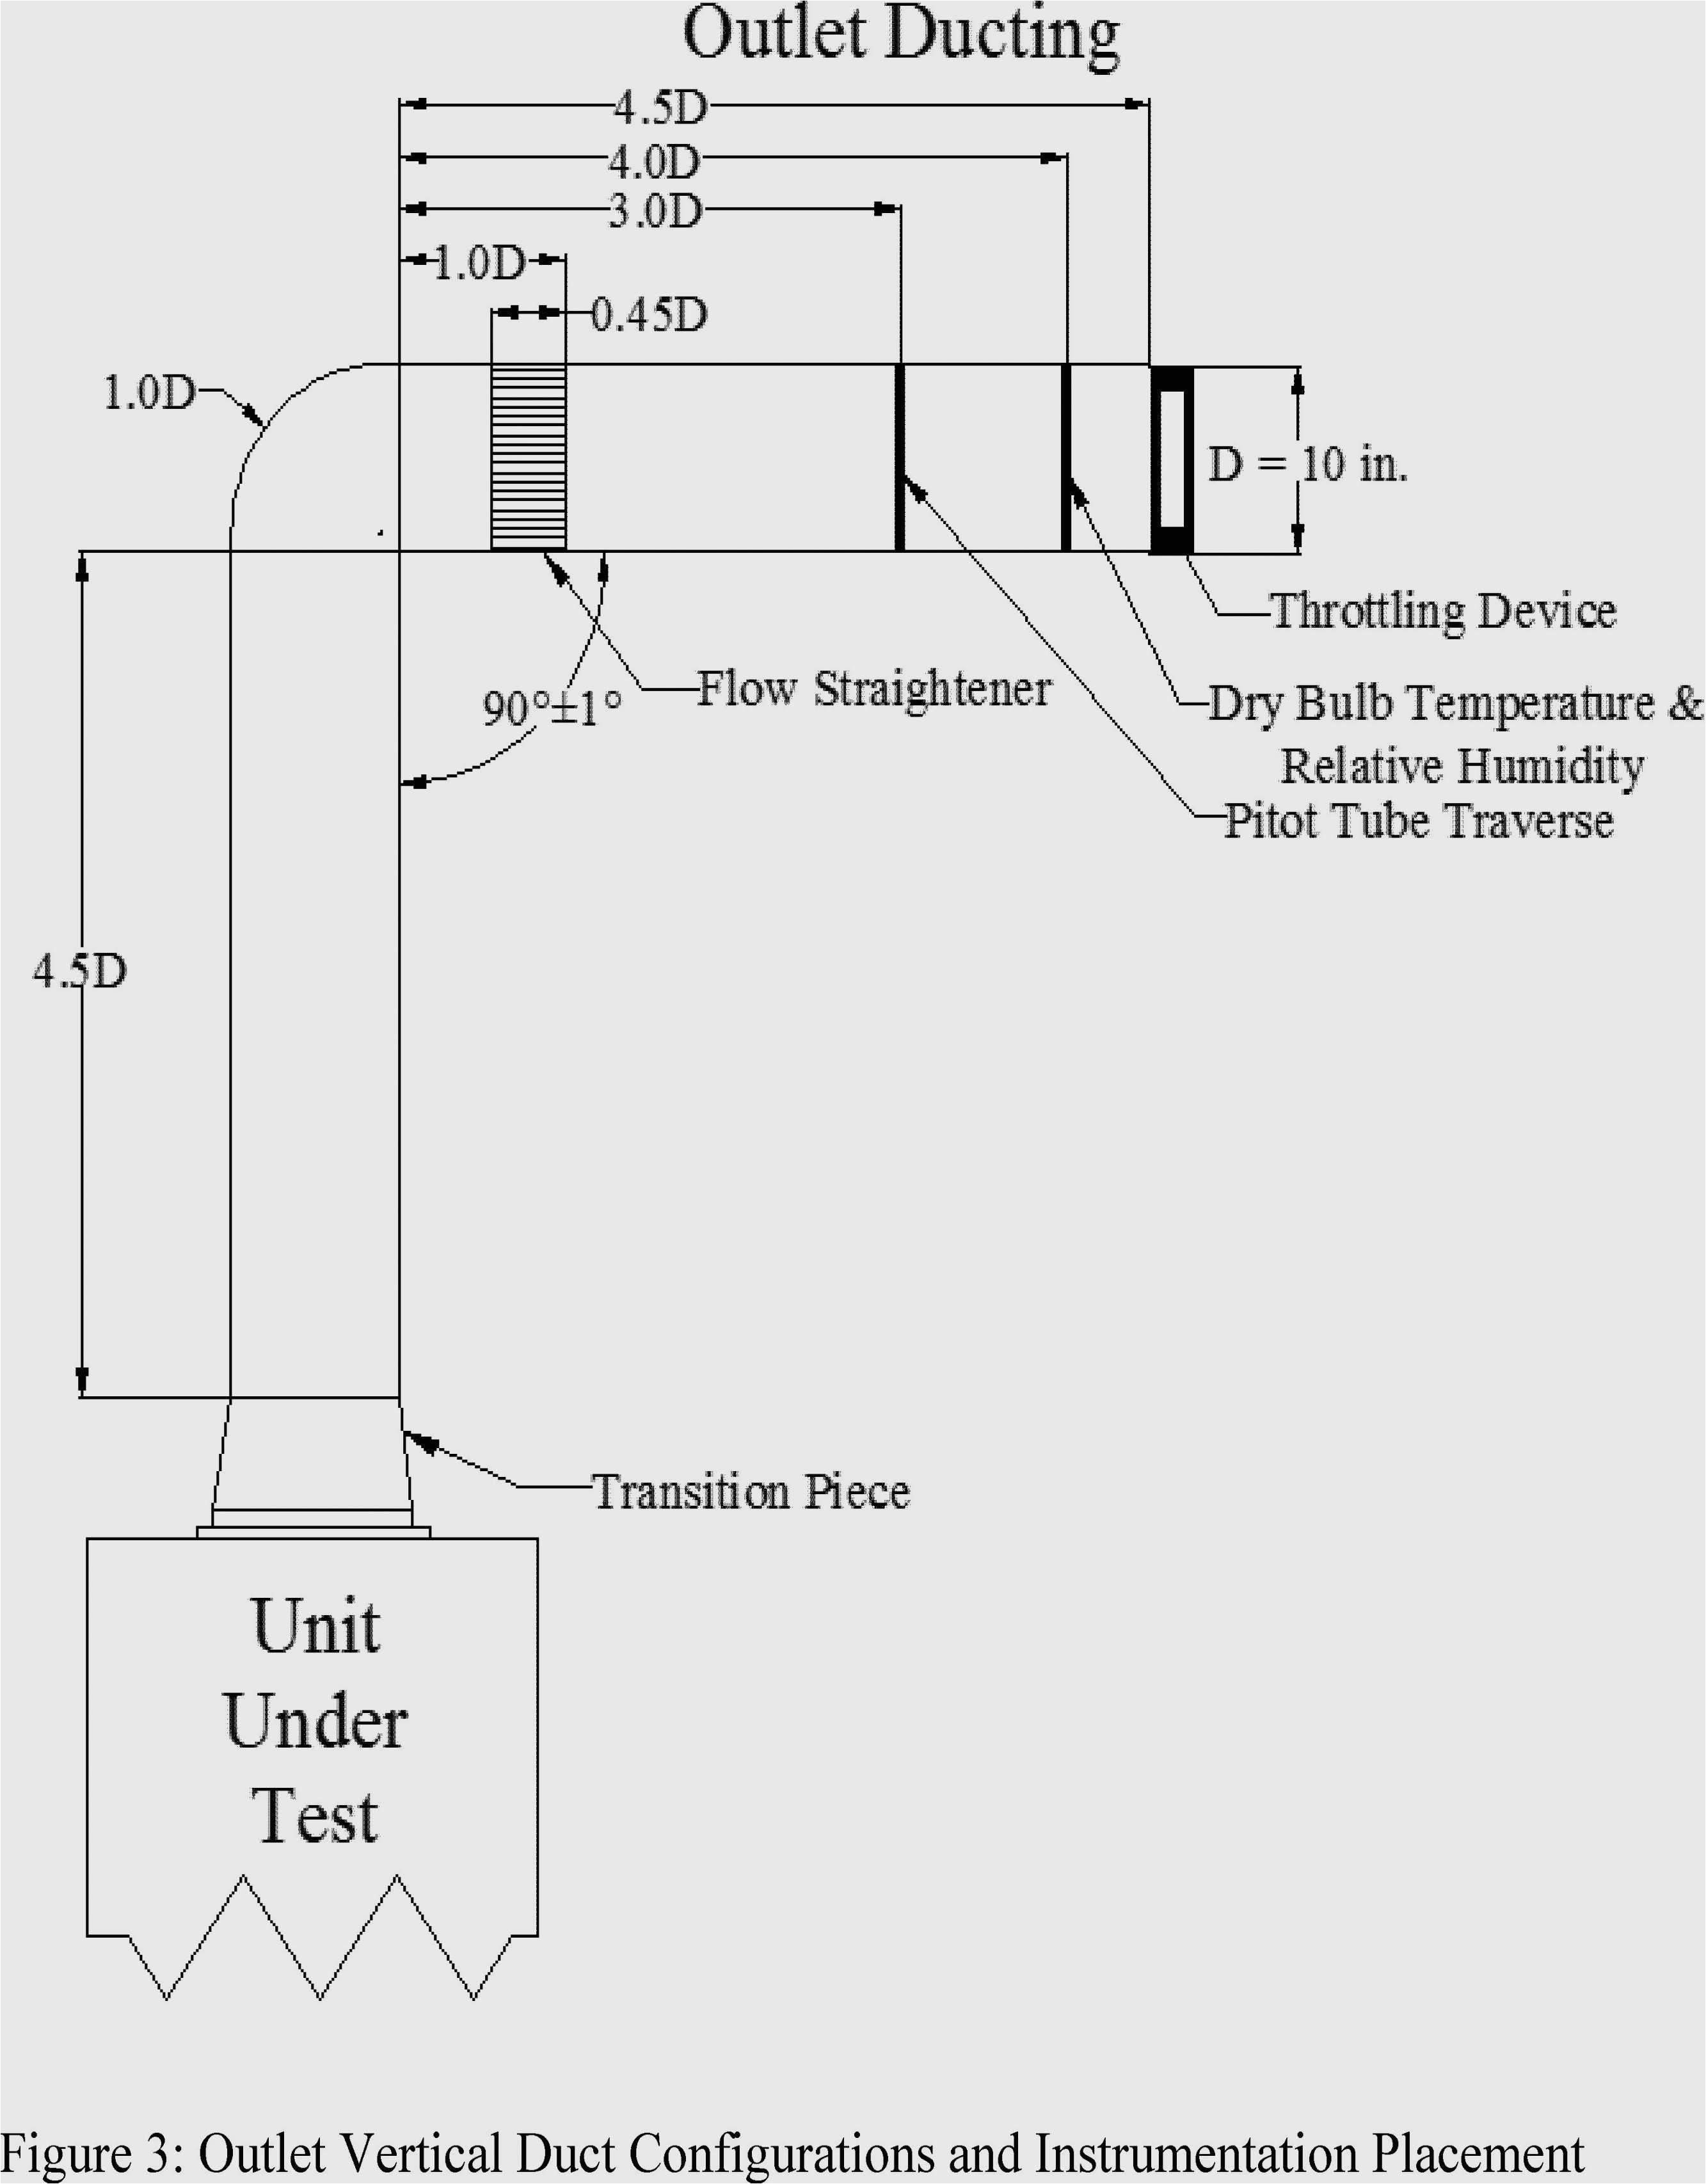 Wiring A Switched Outlet Wiring Diagram Wiring Diagram 3 Way Switch Inspirational 3 Way Switch Wiring